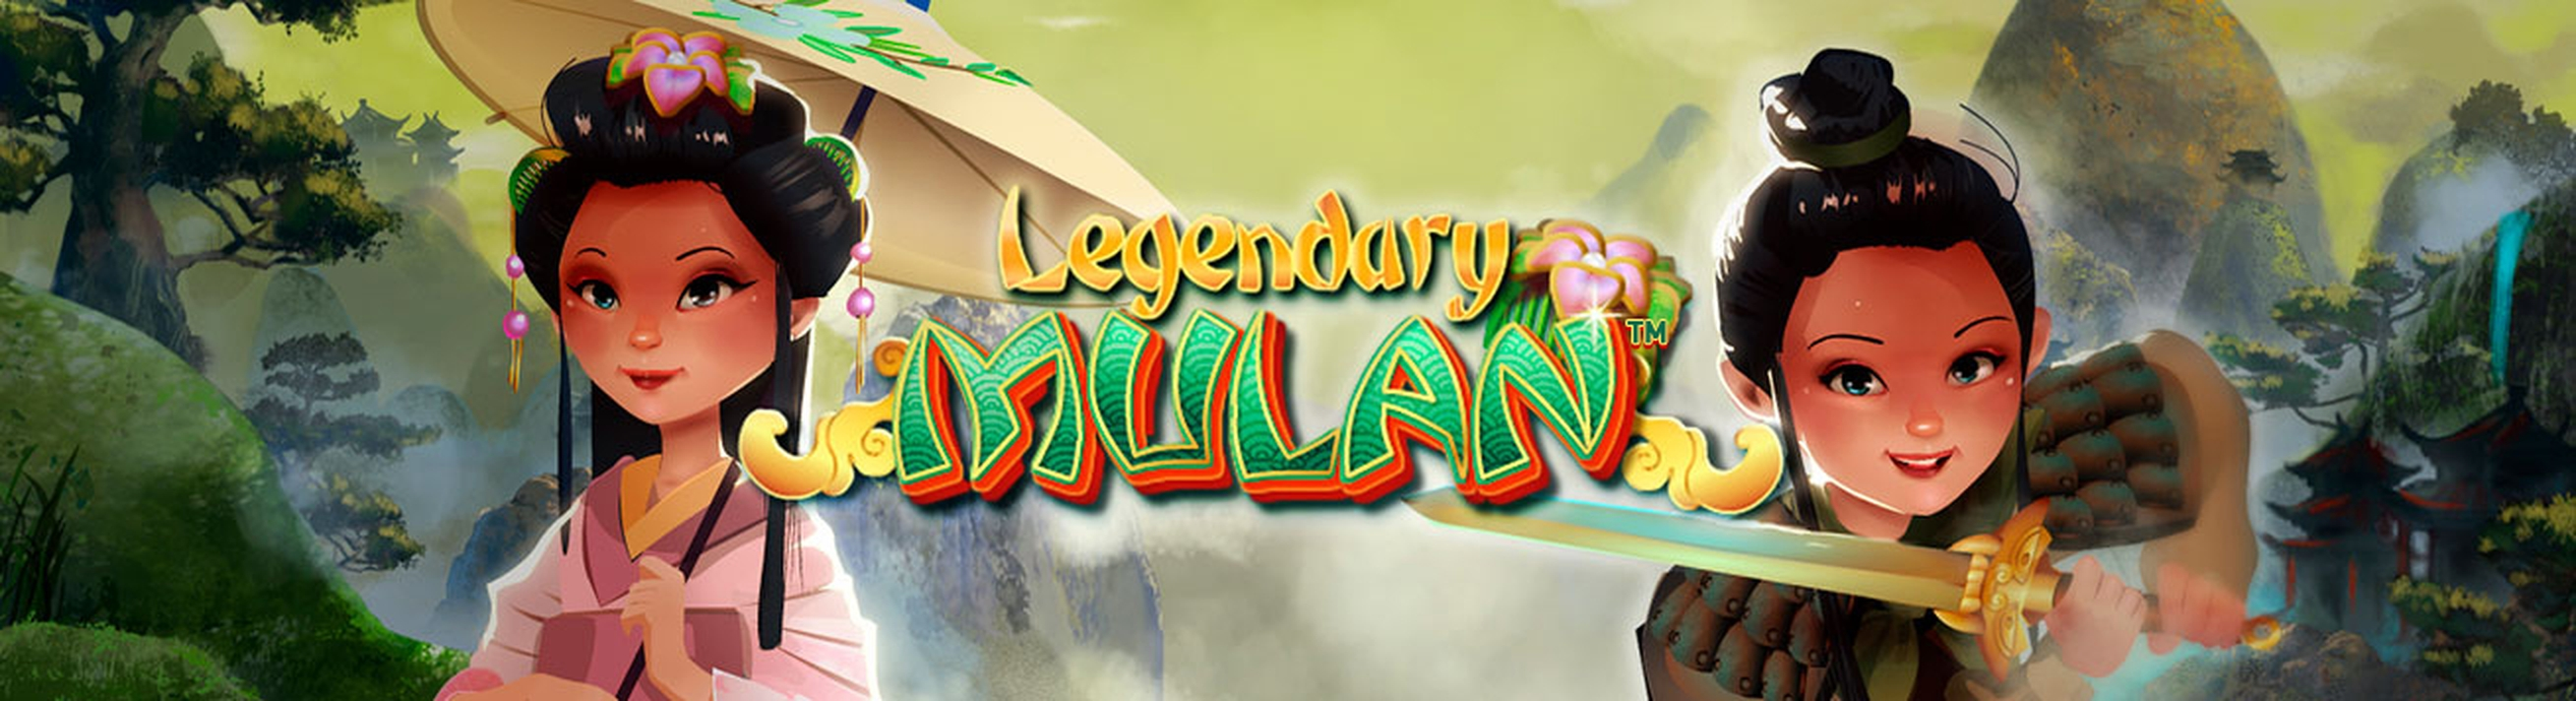 The Legendary Mulan Online Slot Demo Game by Mobilots